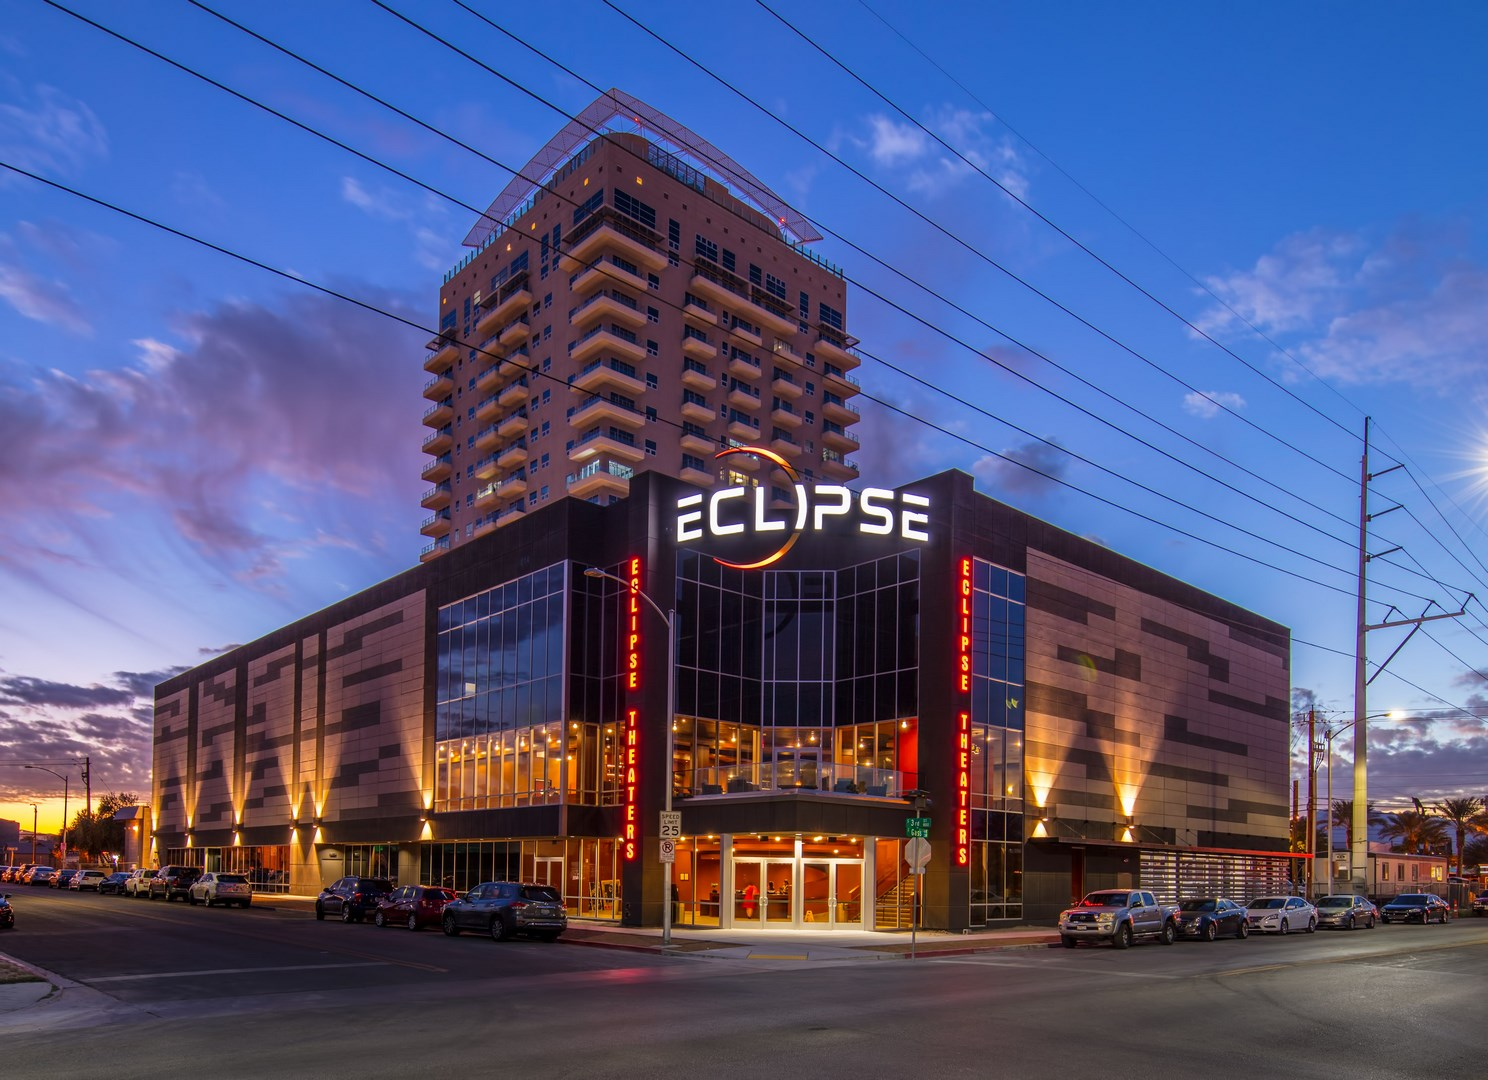 Eclipse Theater-Outside view